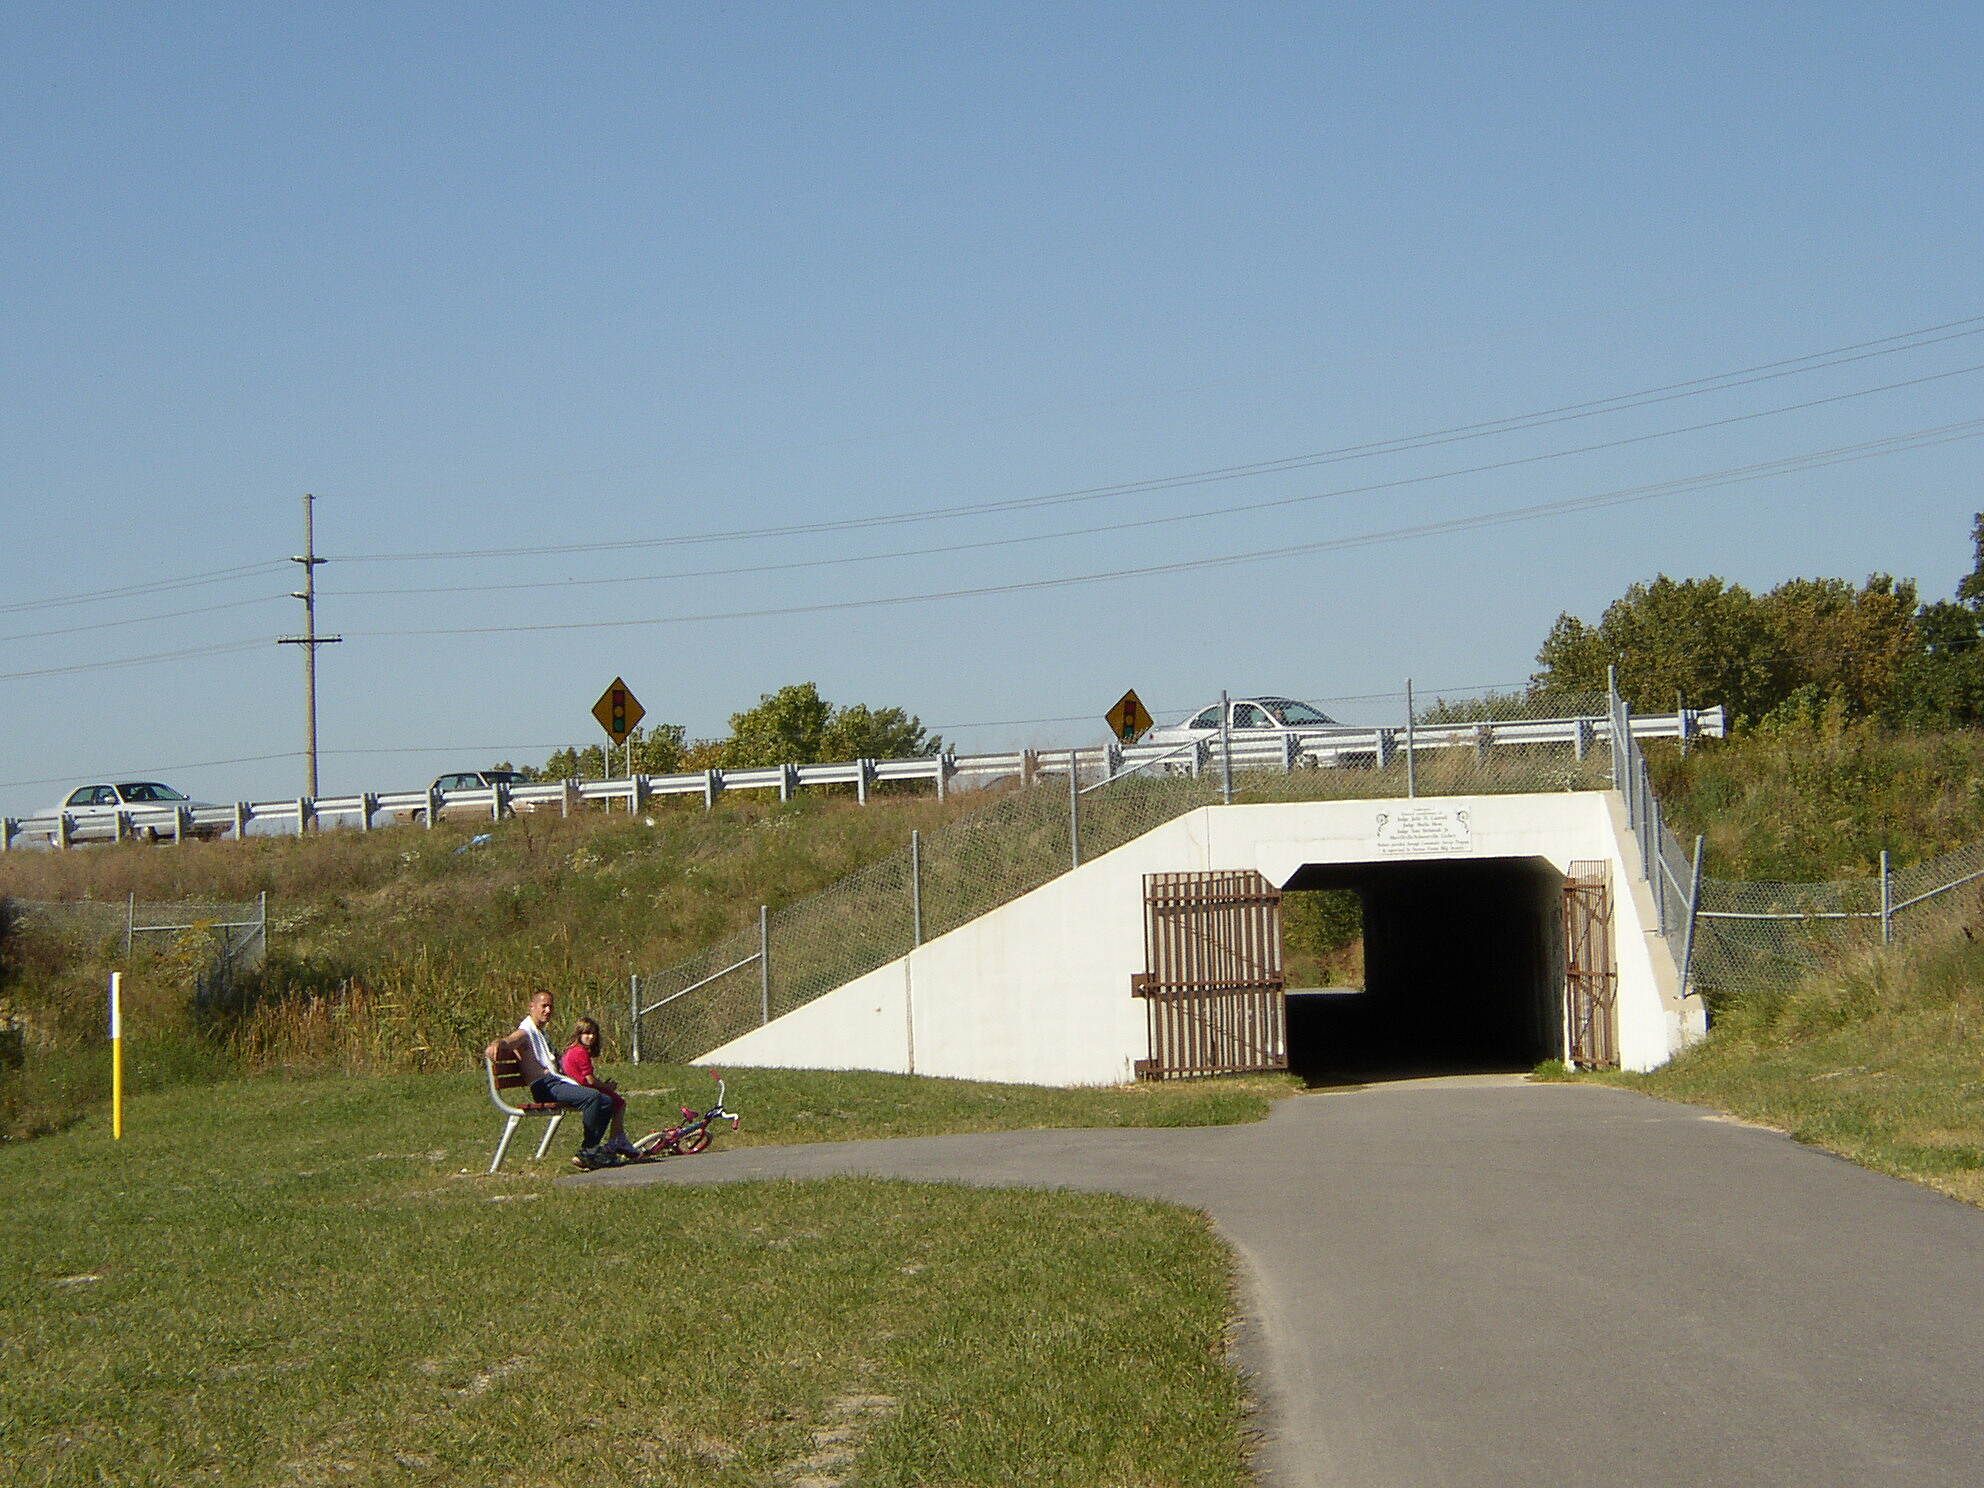 Erie Lackawanna Trail At US 30 in Merrillville